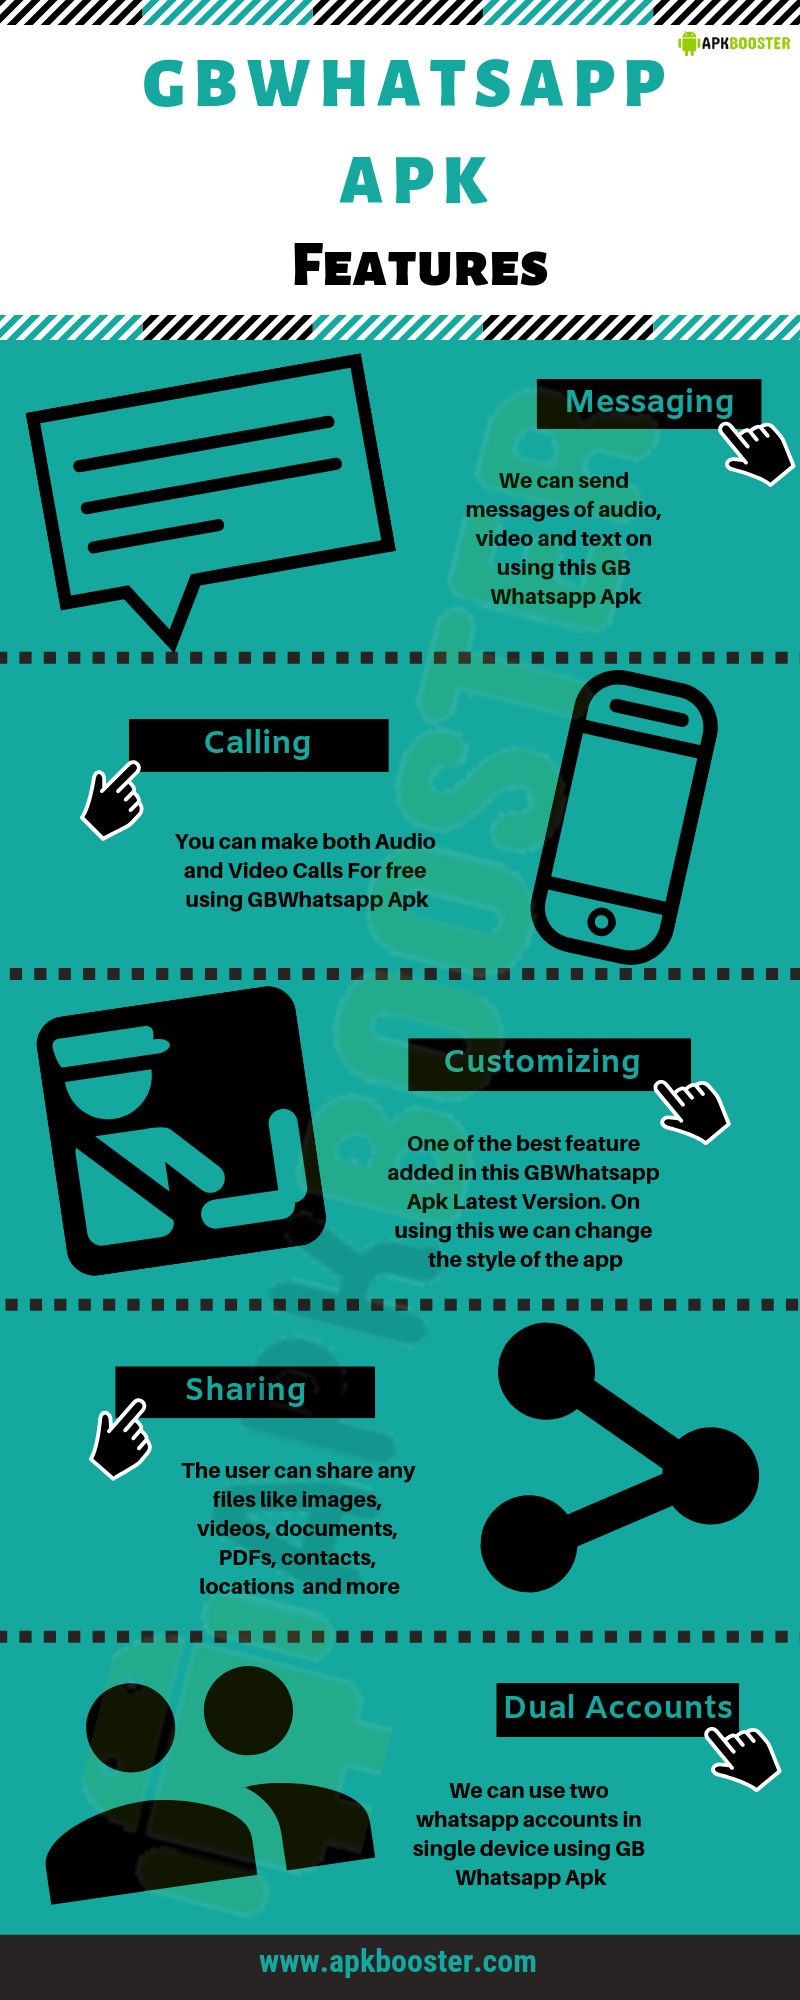 Gb Whatsapp Apk Infographic